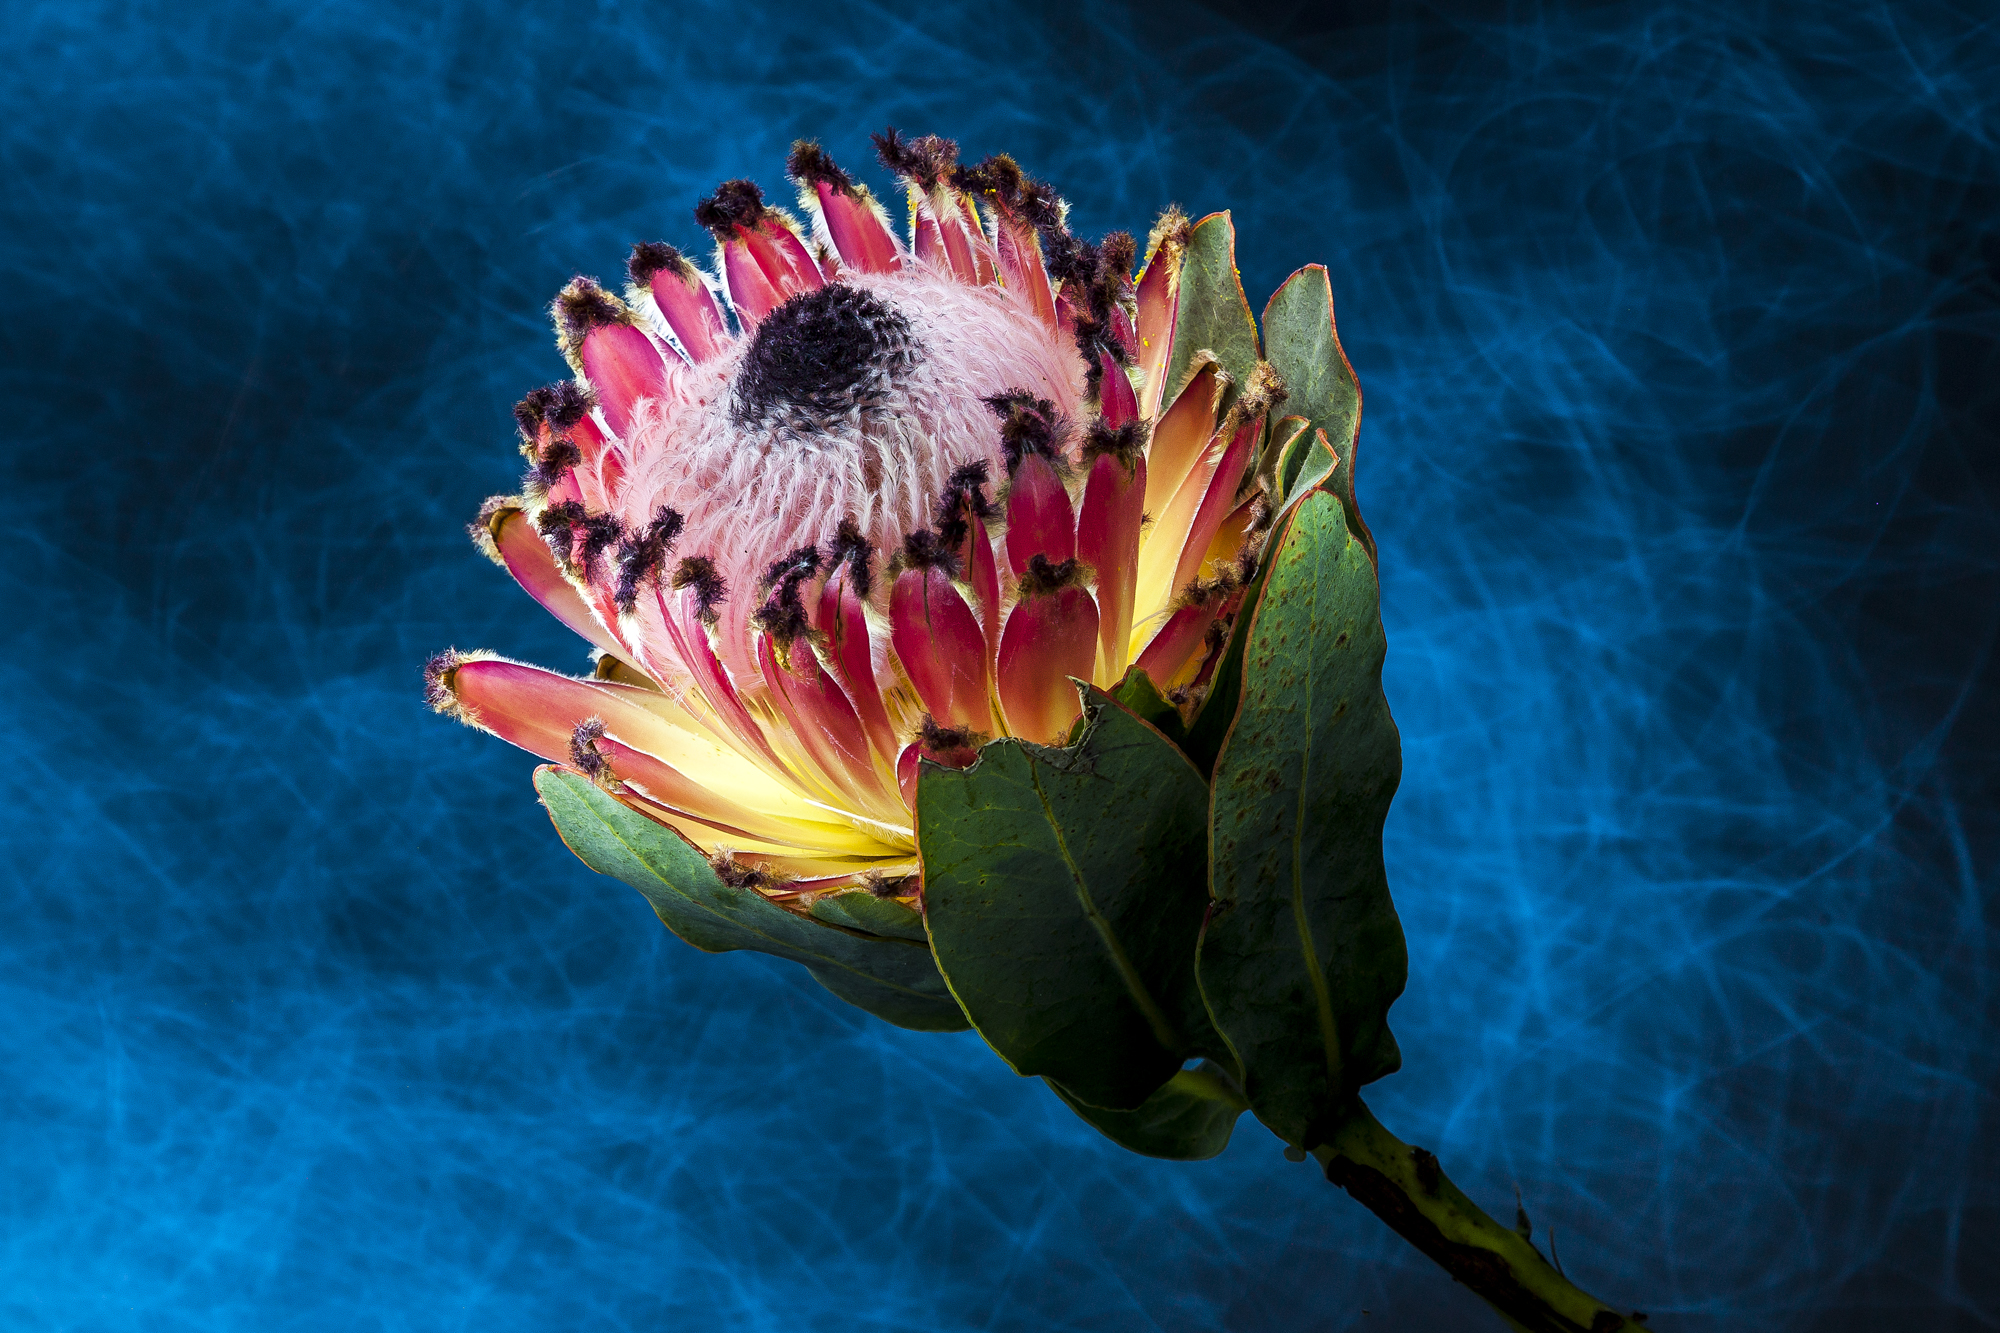 Light Painting and digital retouch is a keen combination of skills often experimented with.